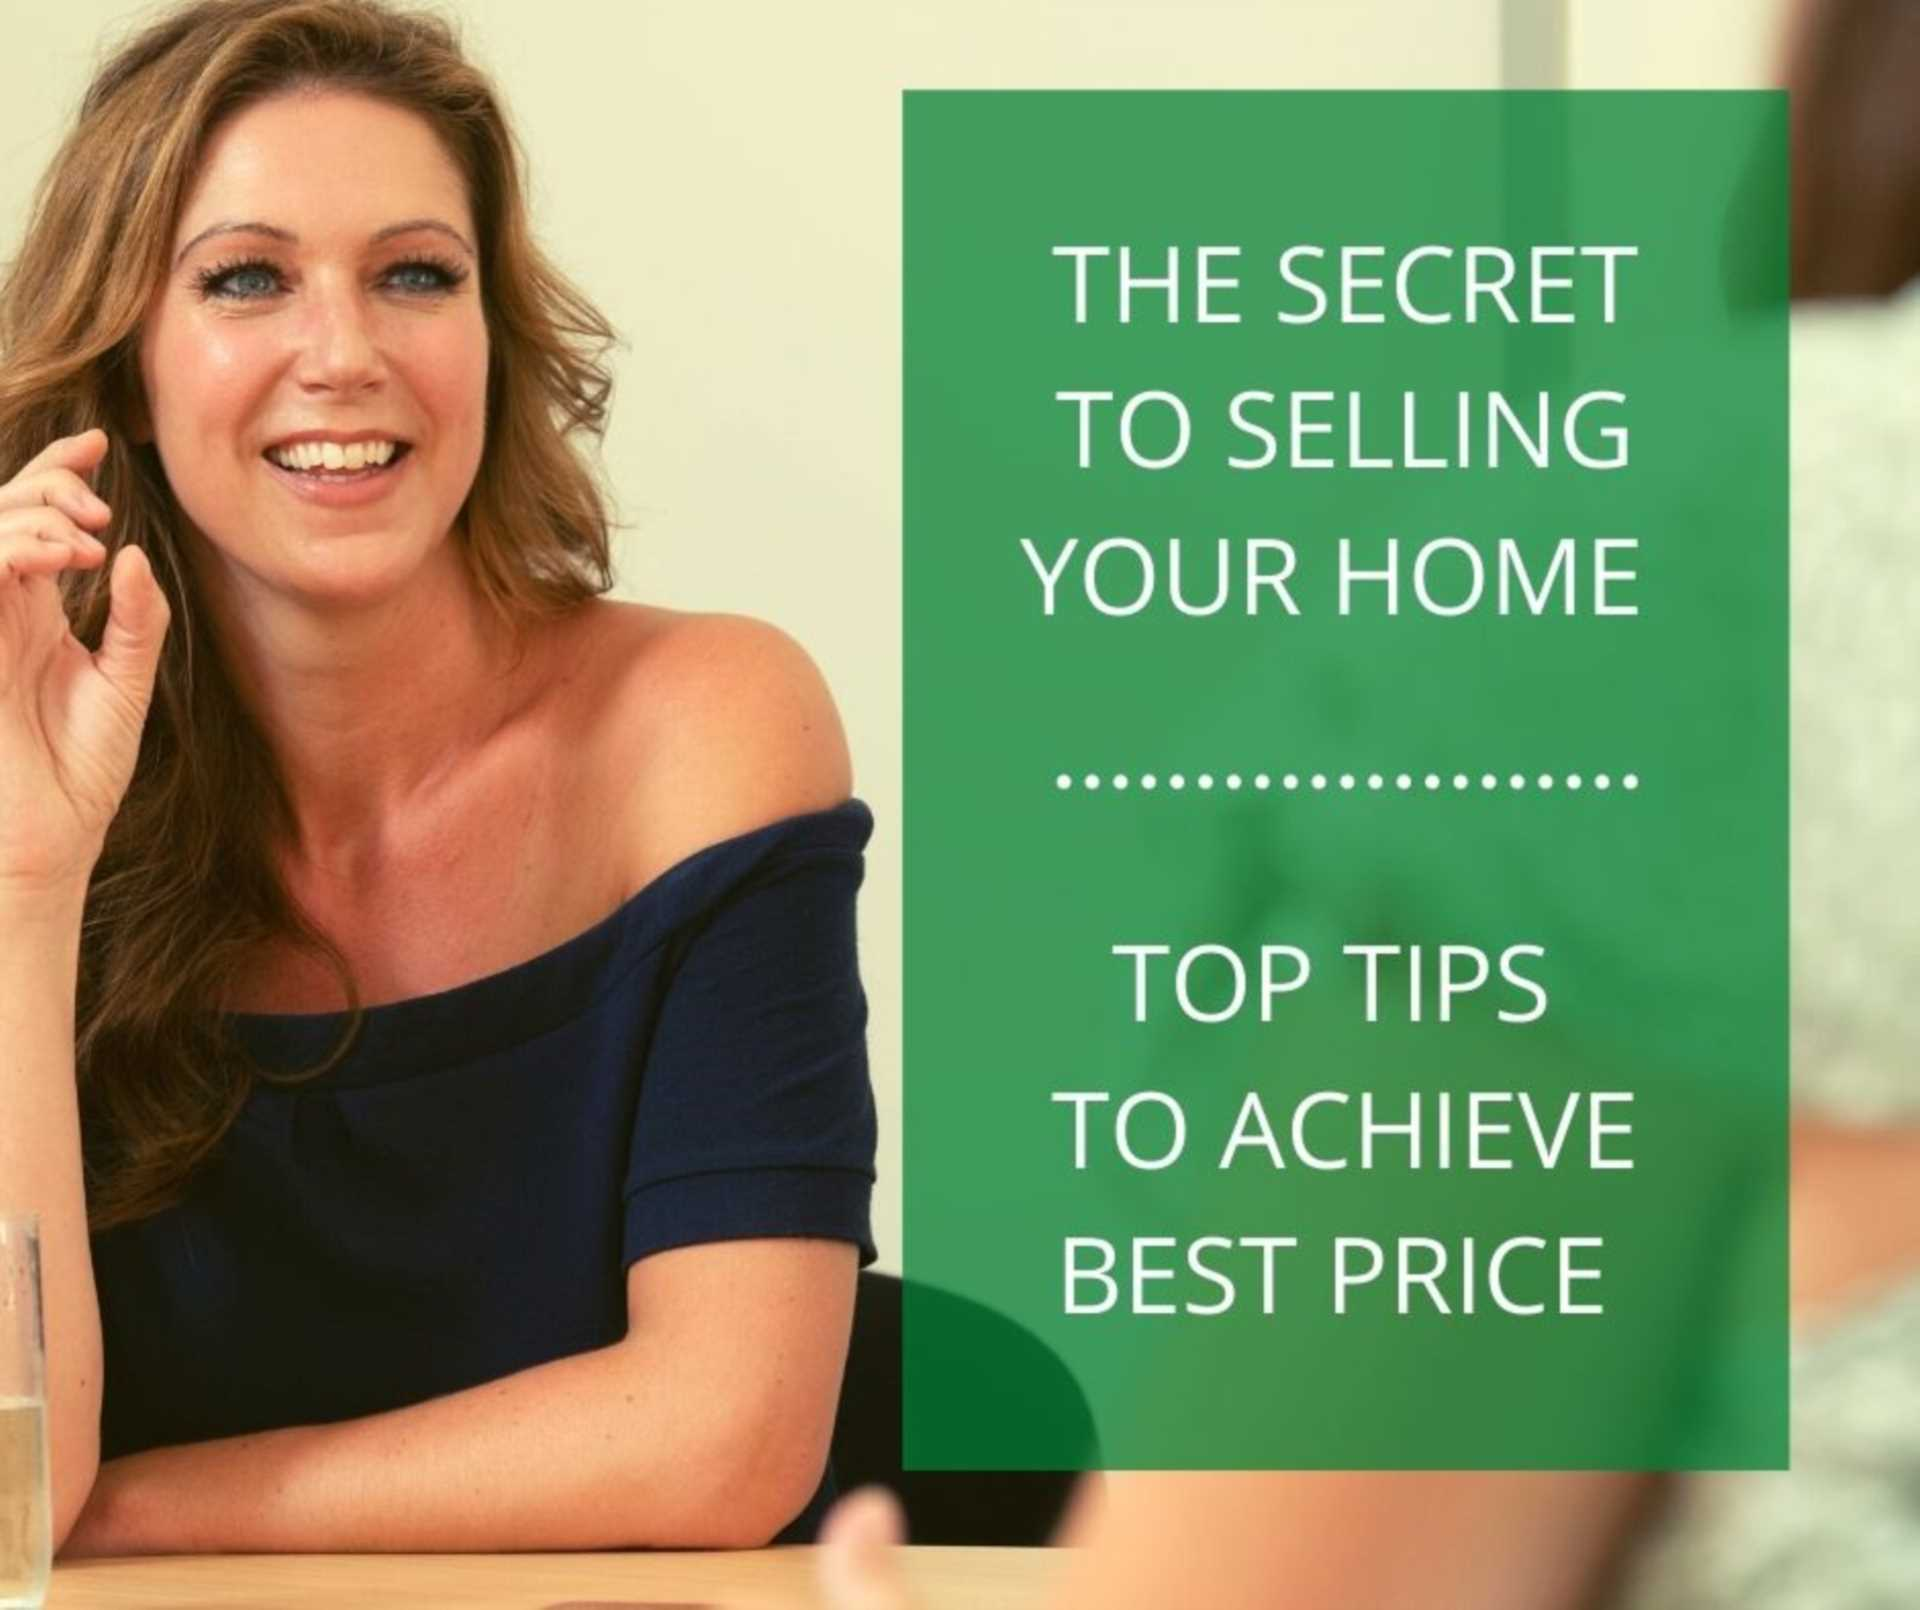 The Secret to selling your home for the best price and fast!